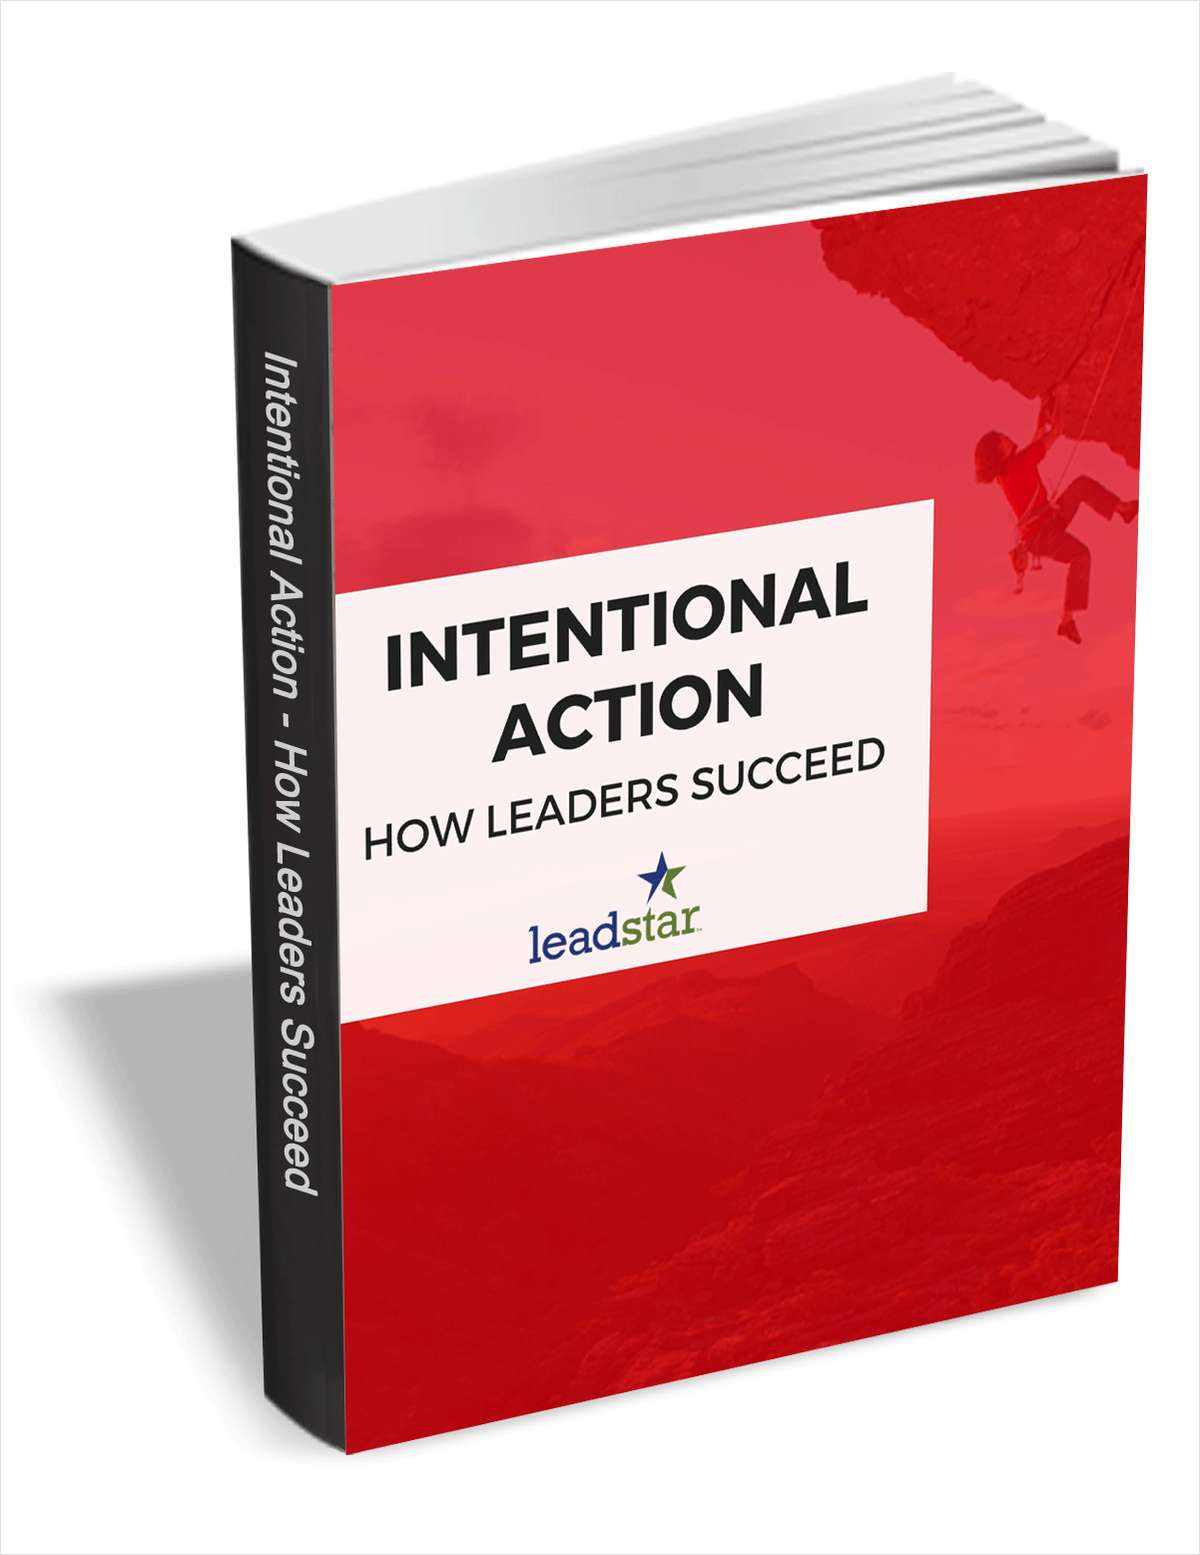 Intentional Action - How Leaders Succeed